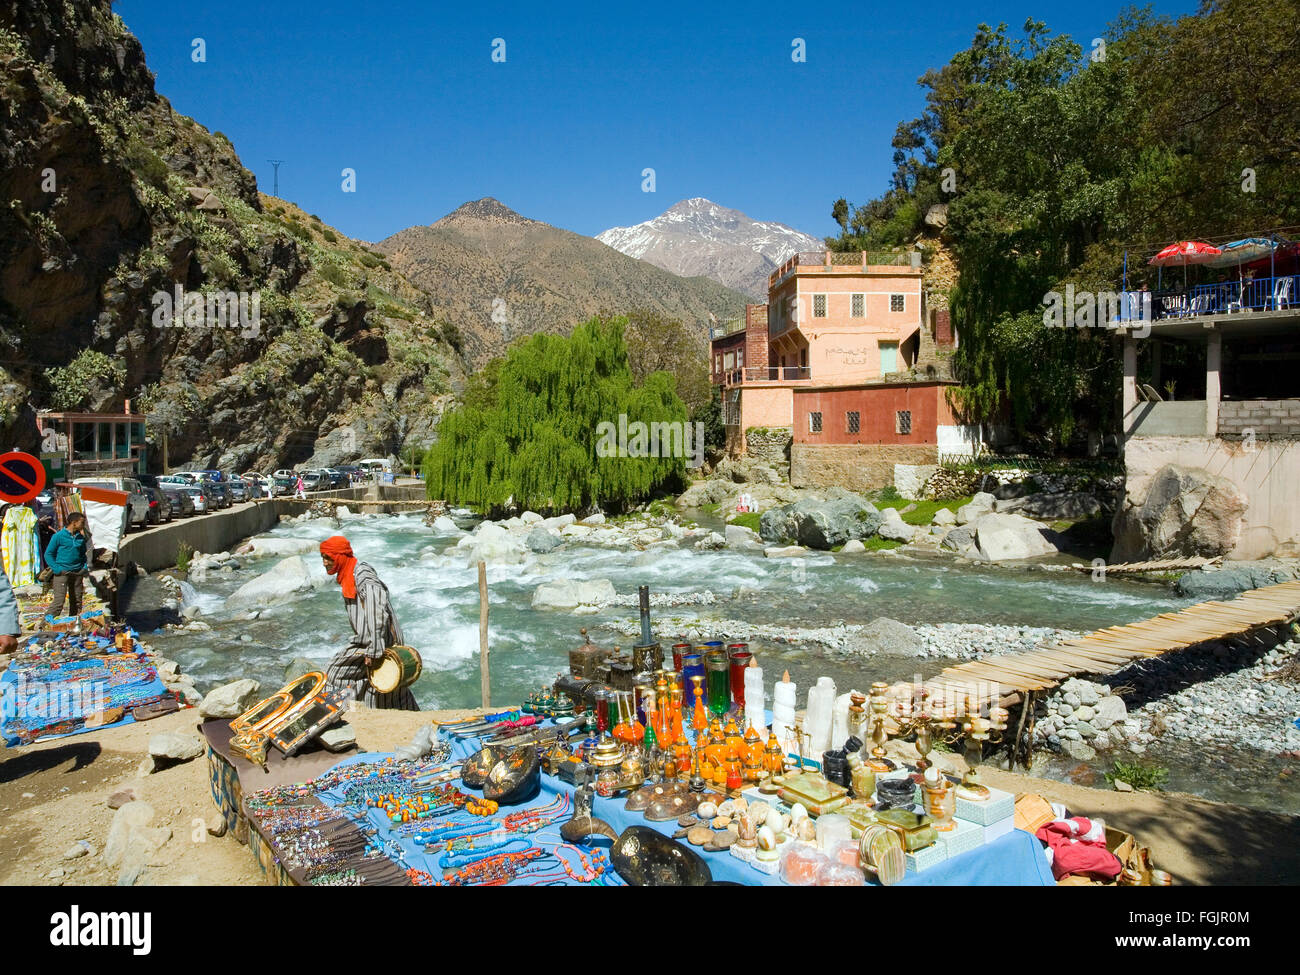 Snow on the mountains at the village of Setti Fatma, springtime in the Ourika Valley, Morocco near Marrakech - Stock Image